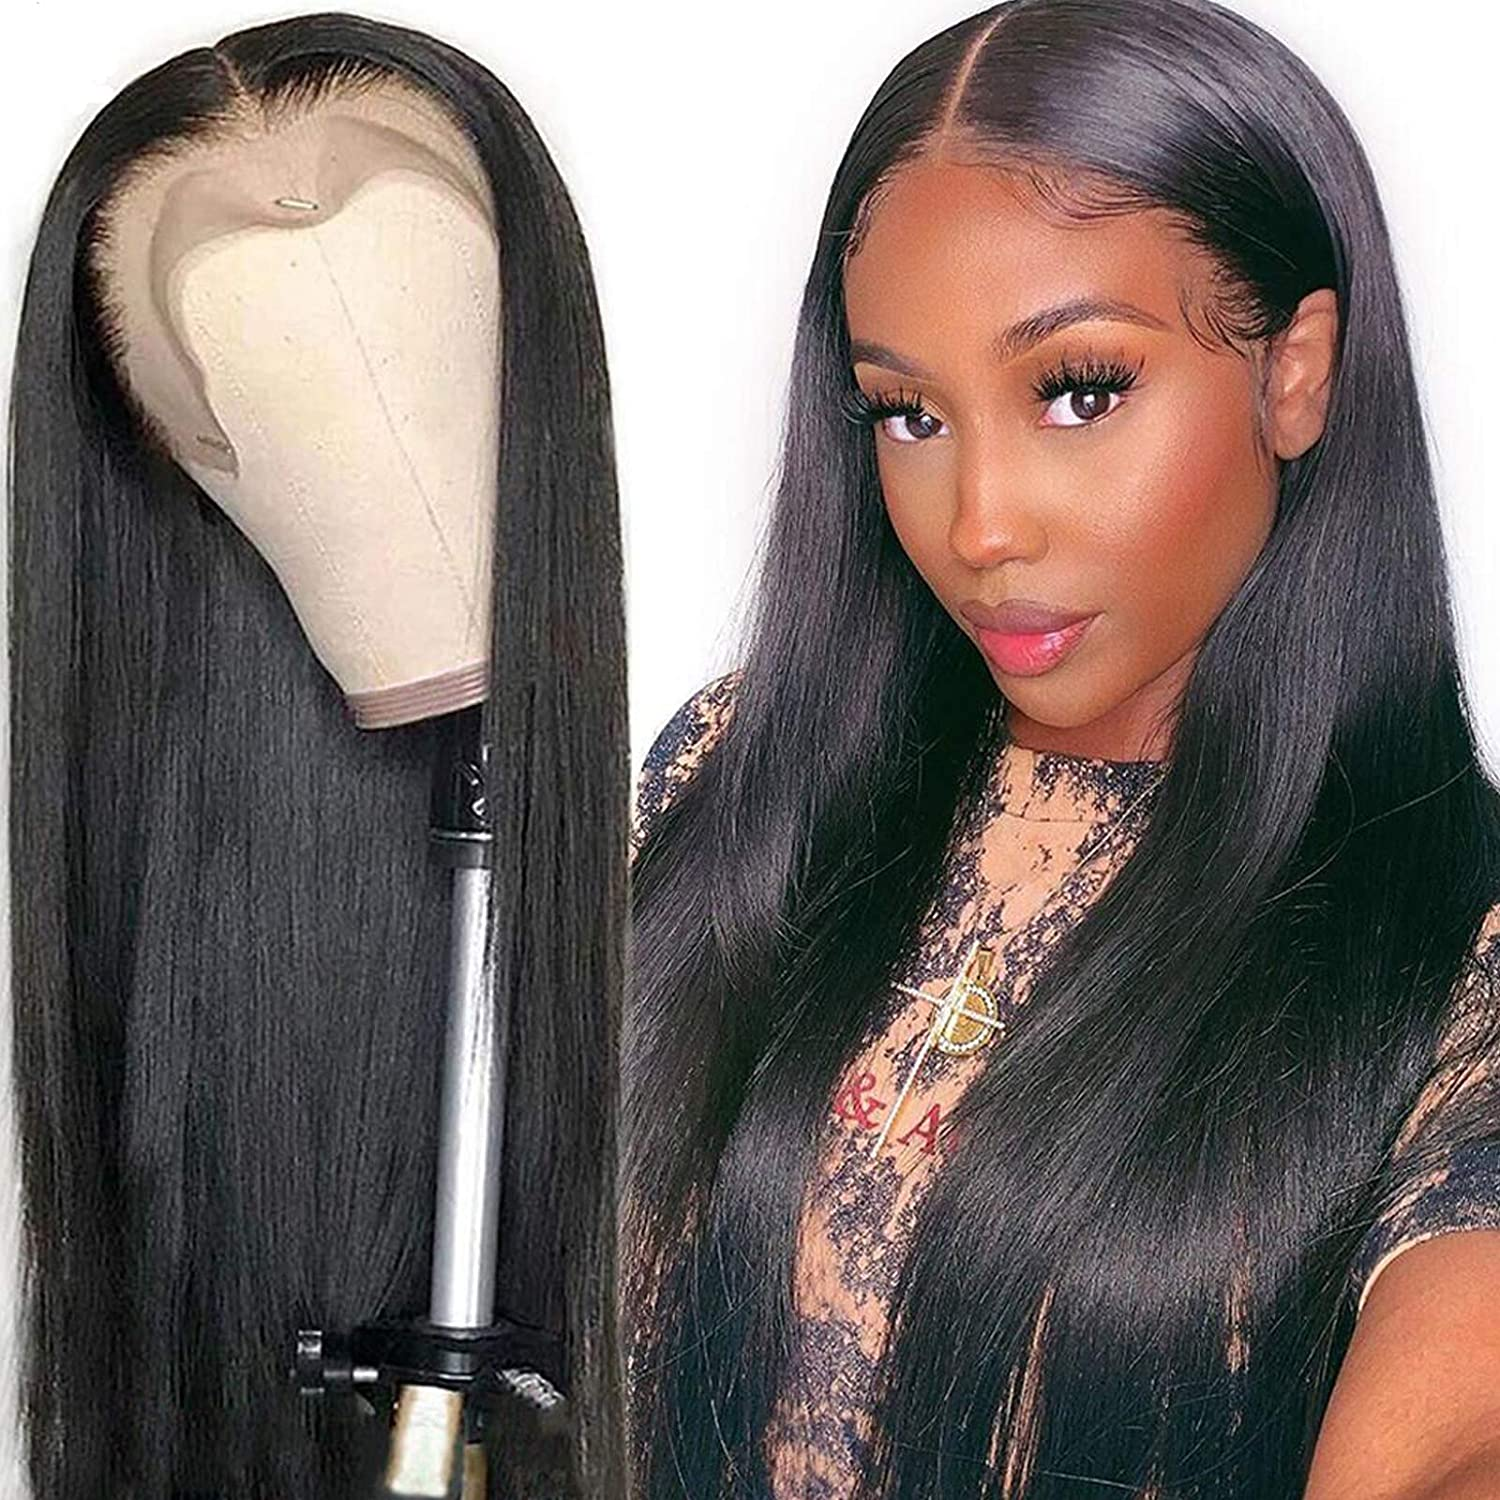 13x6 HD Transparent Full Lace Front Wig 24 26 Inch Bone Straight Human Hair Frontal Wigs Brazilian Straight 13x4 4x4 Closure Wig